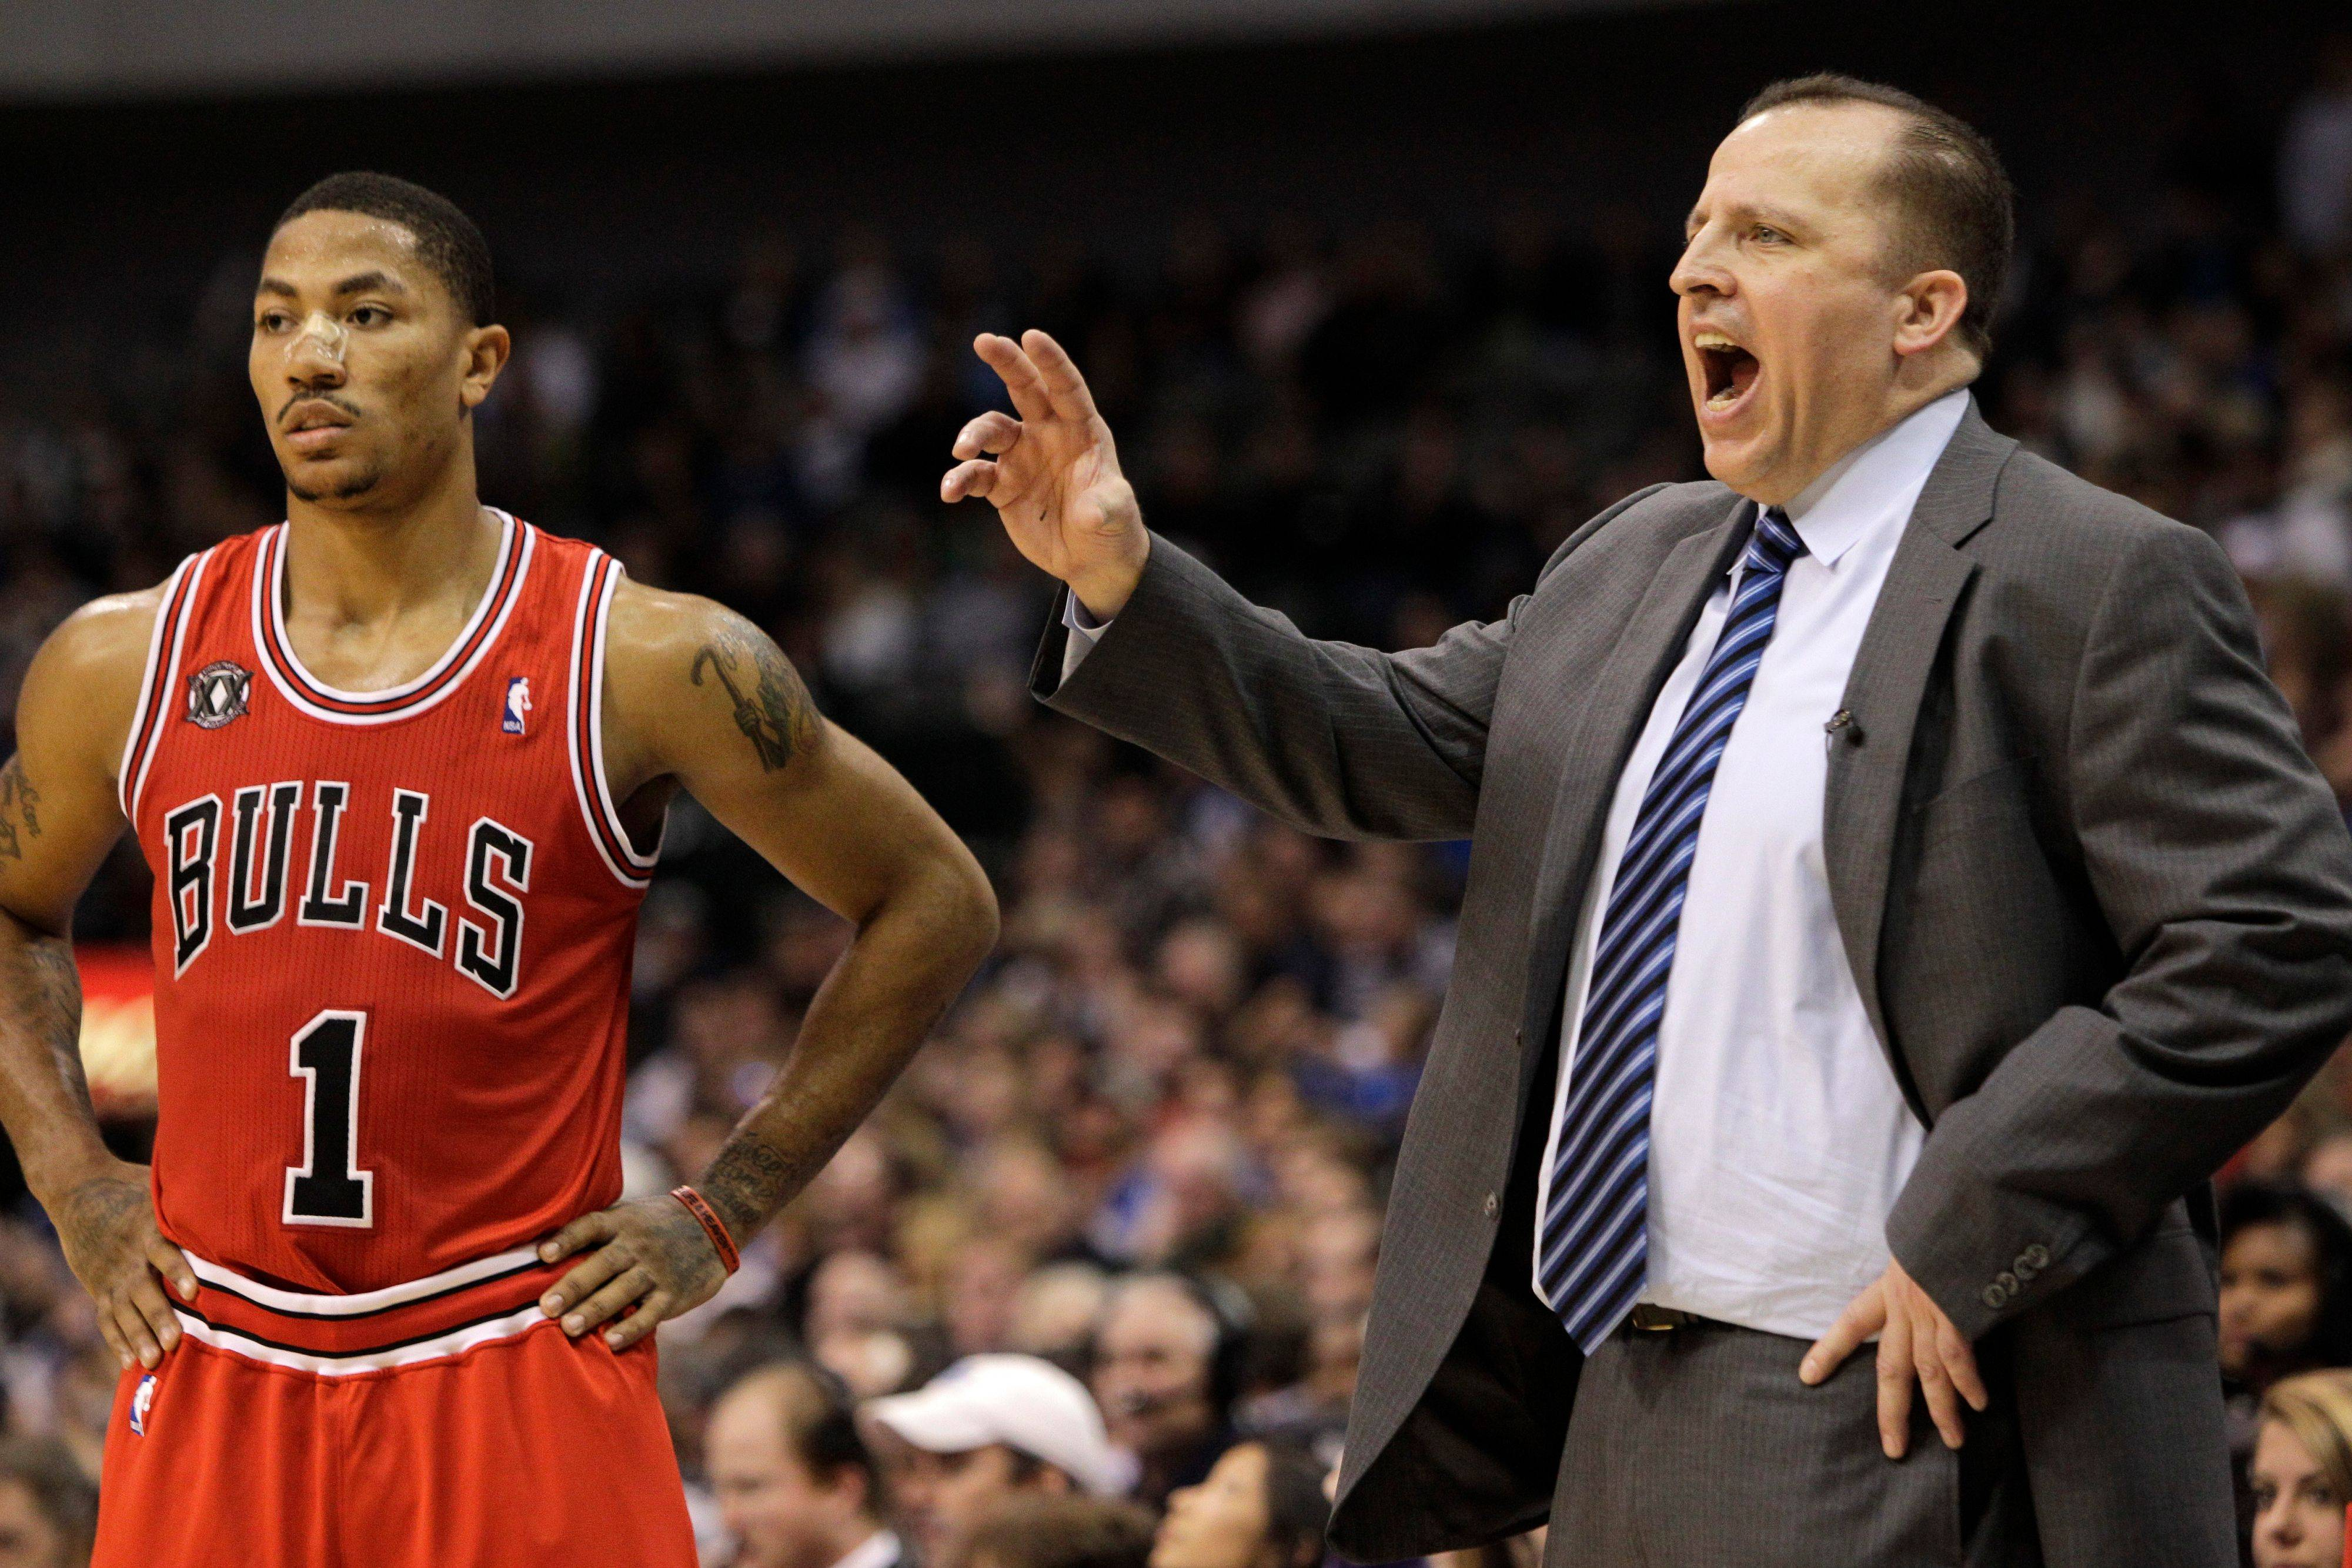 Tom Thibodeau and Chicago Bulls' Derrick Rose during a game against the Dallas Mavericks.